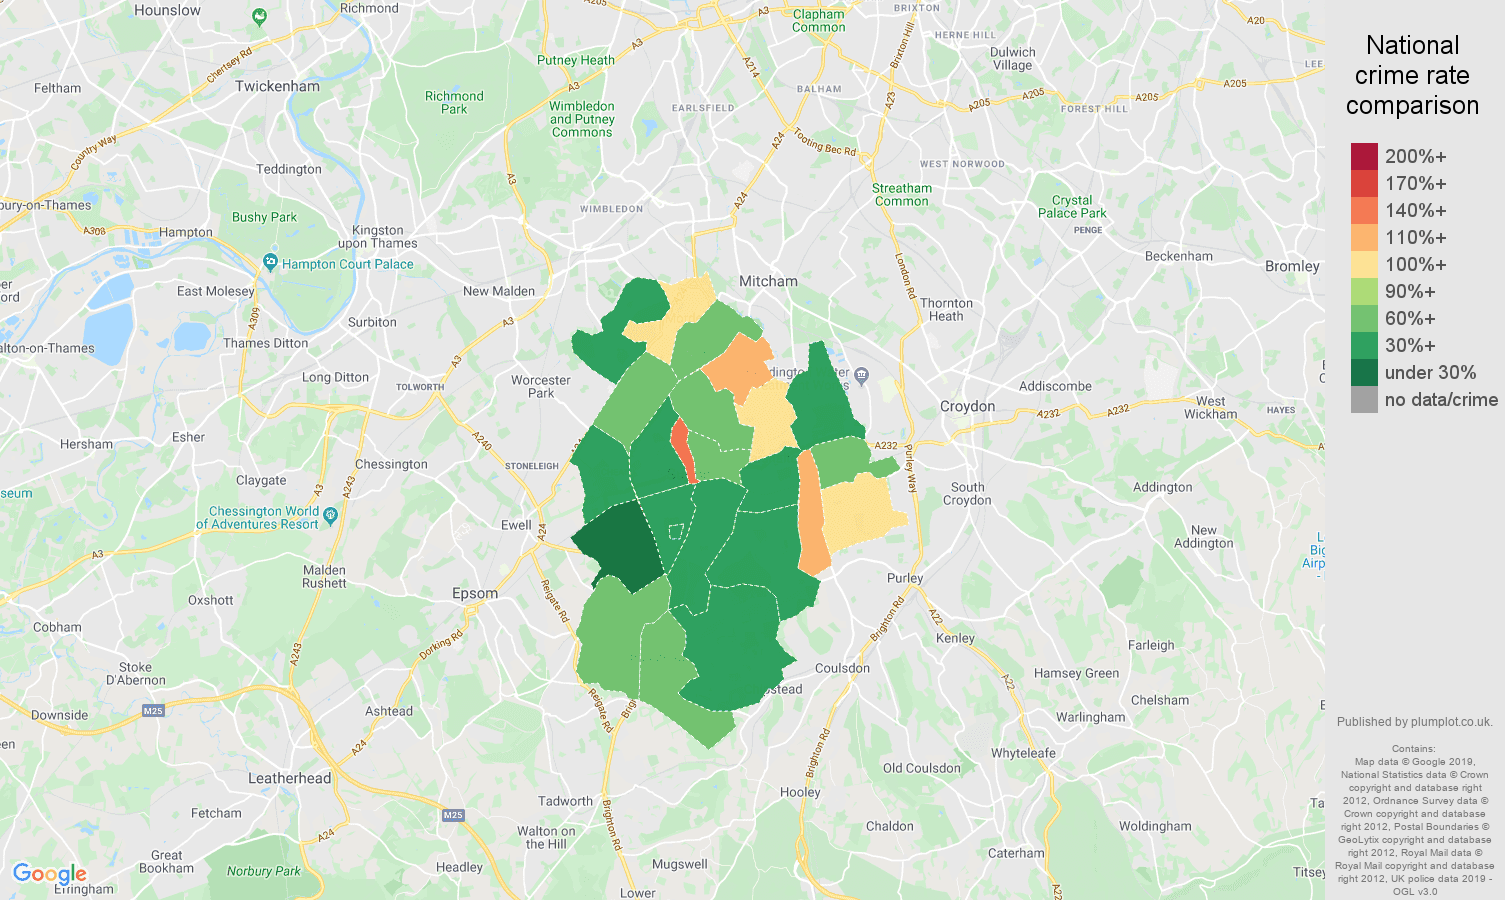 Sutton public order crime rate comparison map